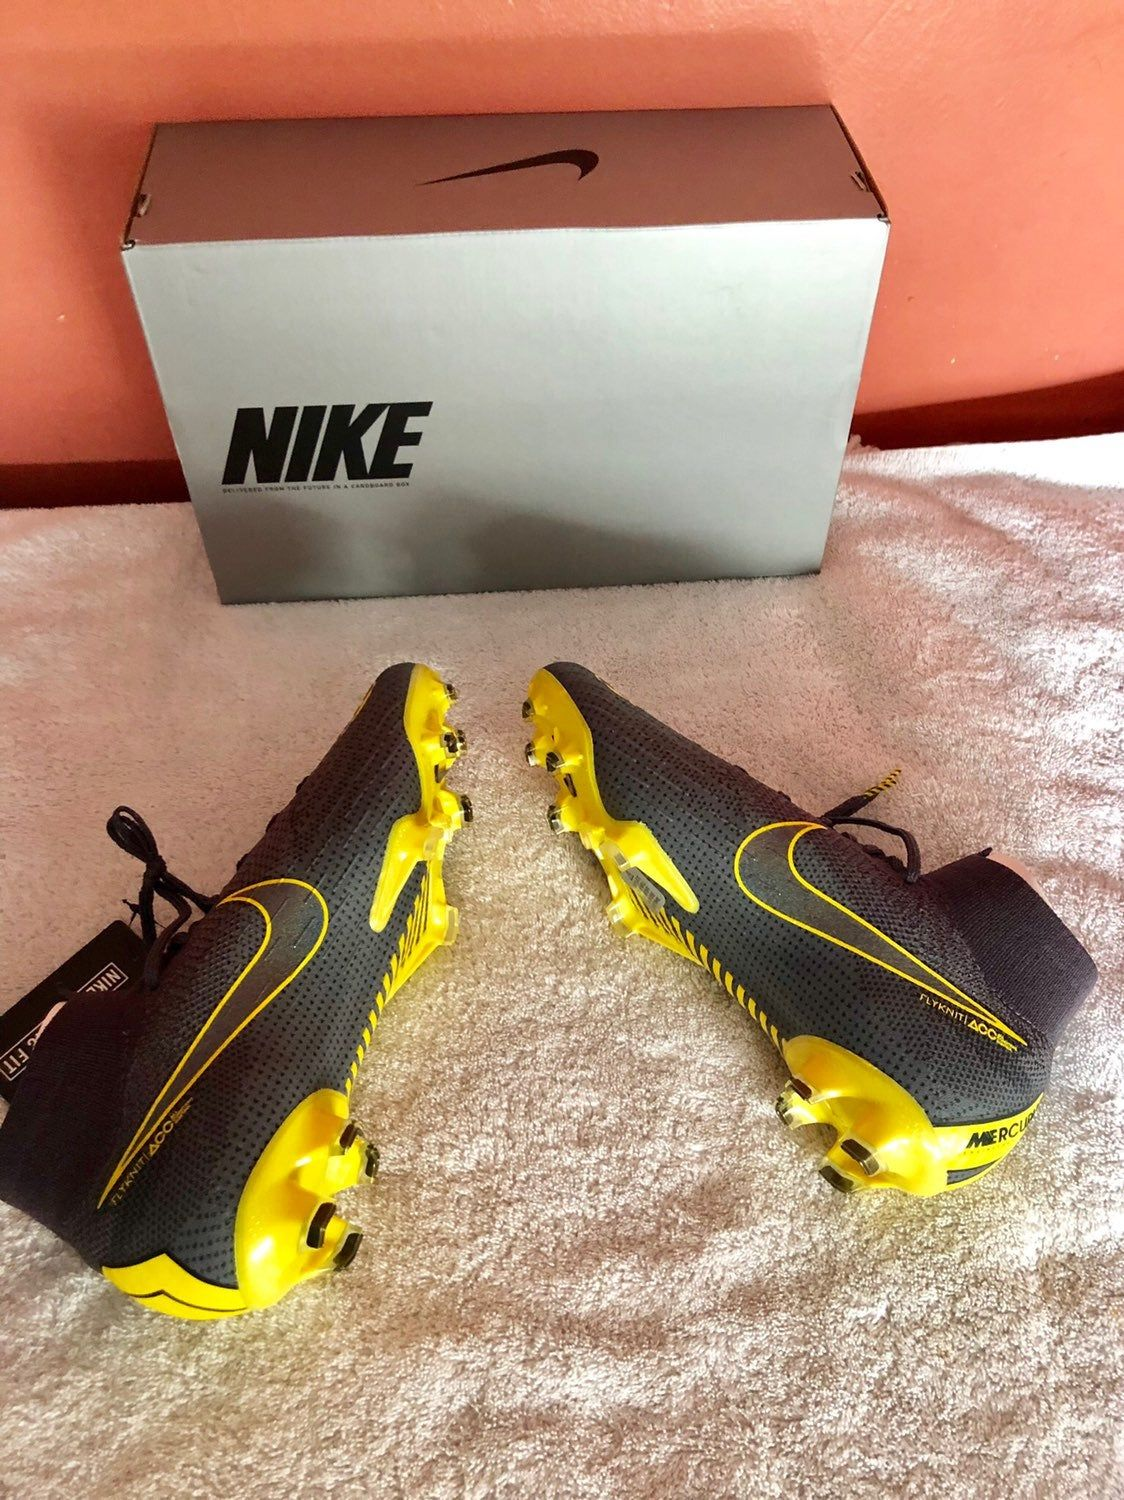 NEW, WITH BOX AUTHENTIC SOCCER CLEATS